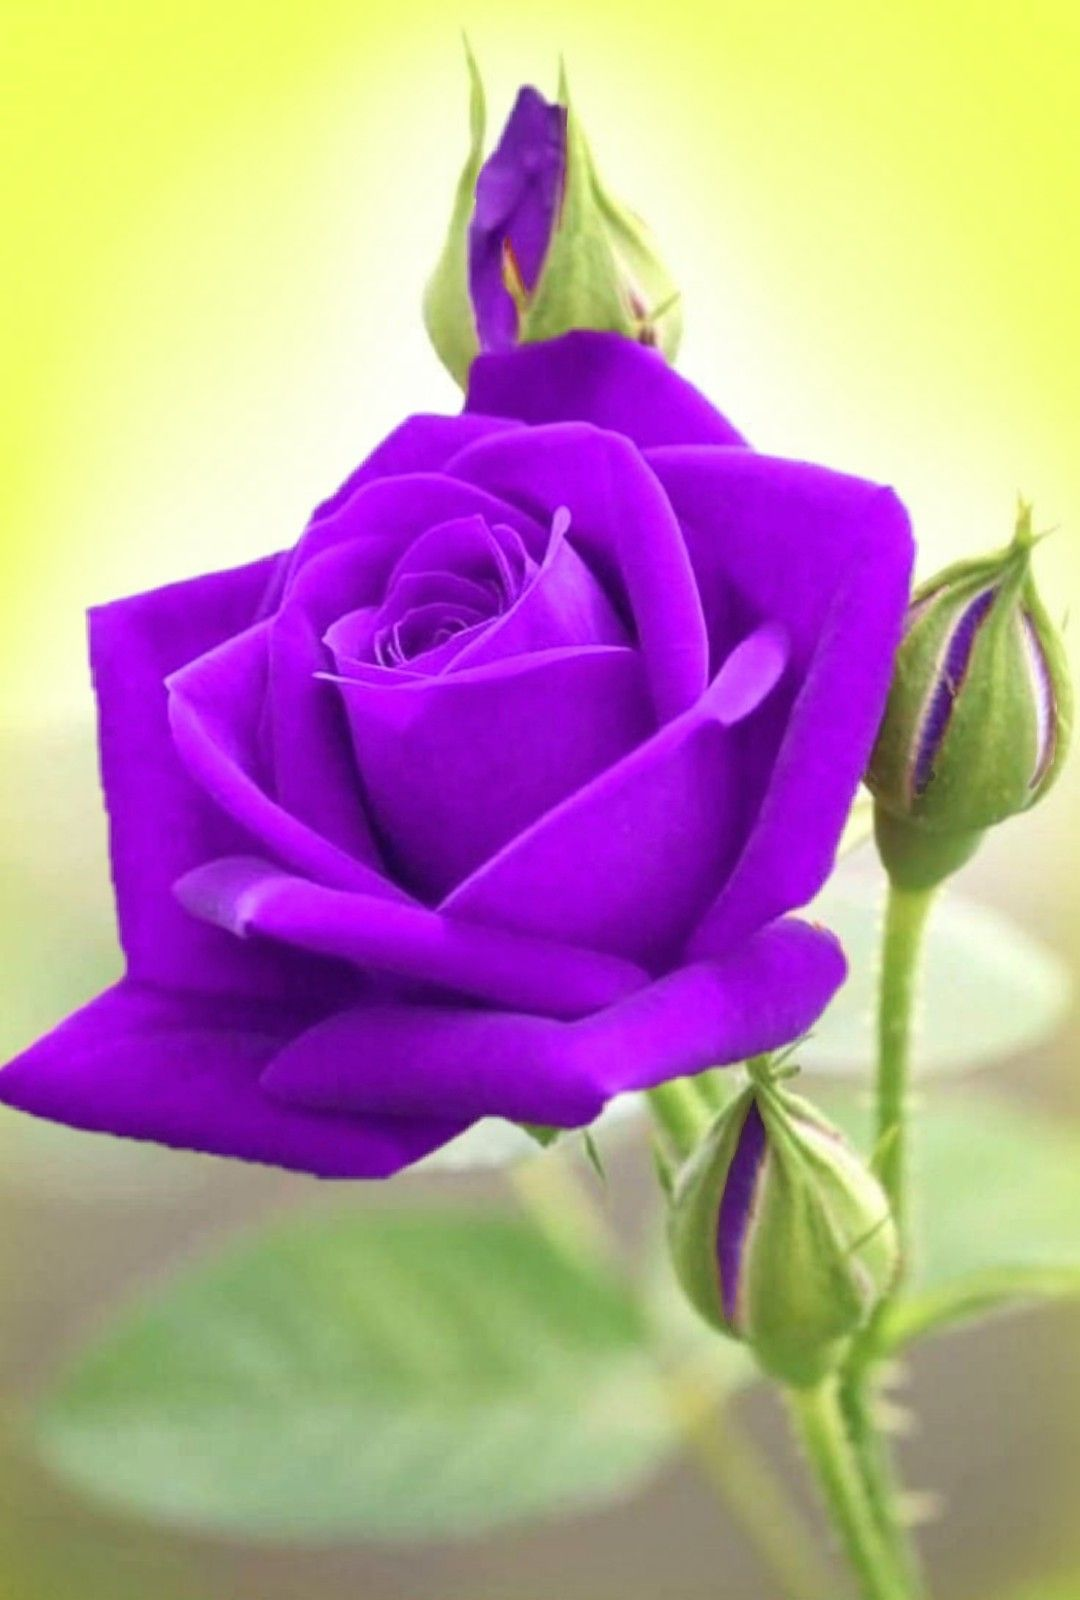 Pin By Silvija Petrovic On Flowers In 2020 Rose Flower Pictures Beautiful Roses Purple Flowers